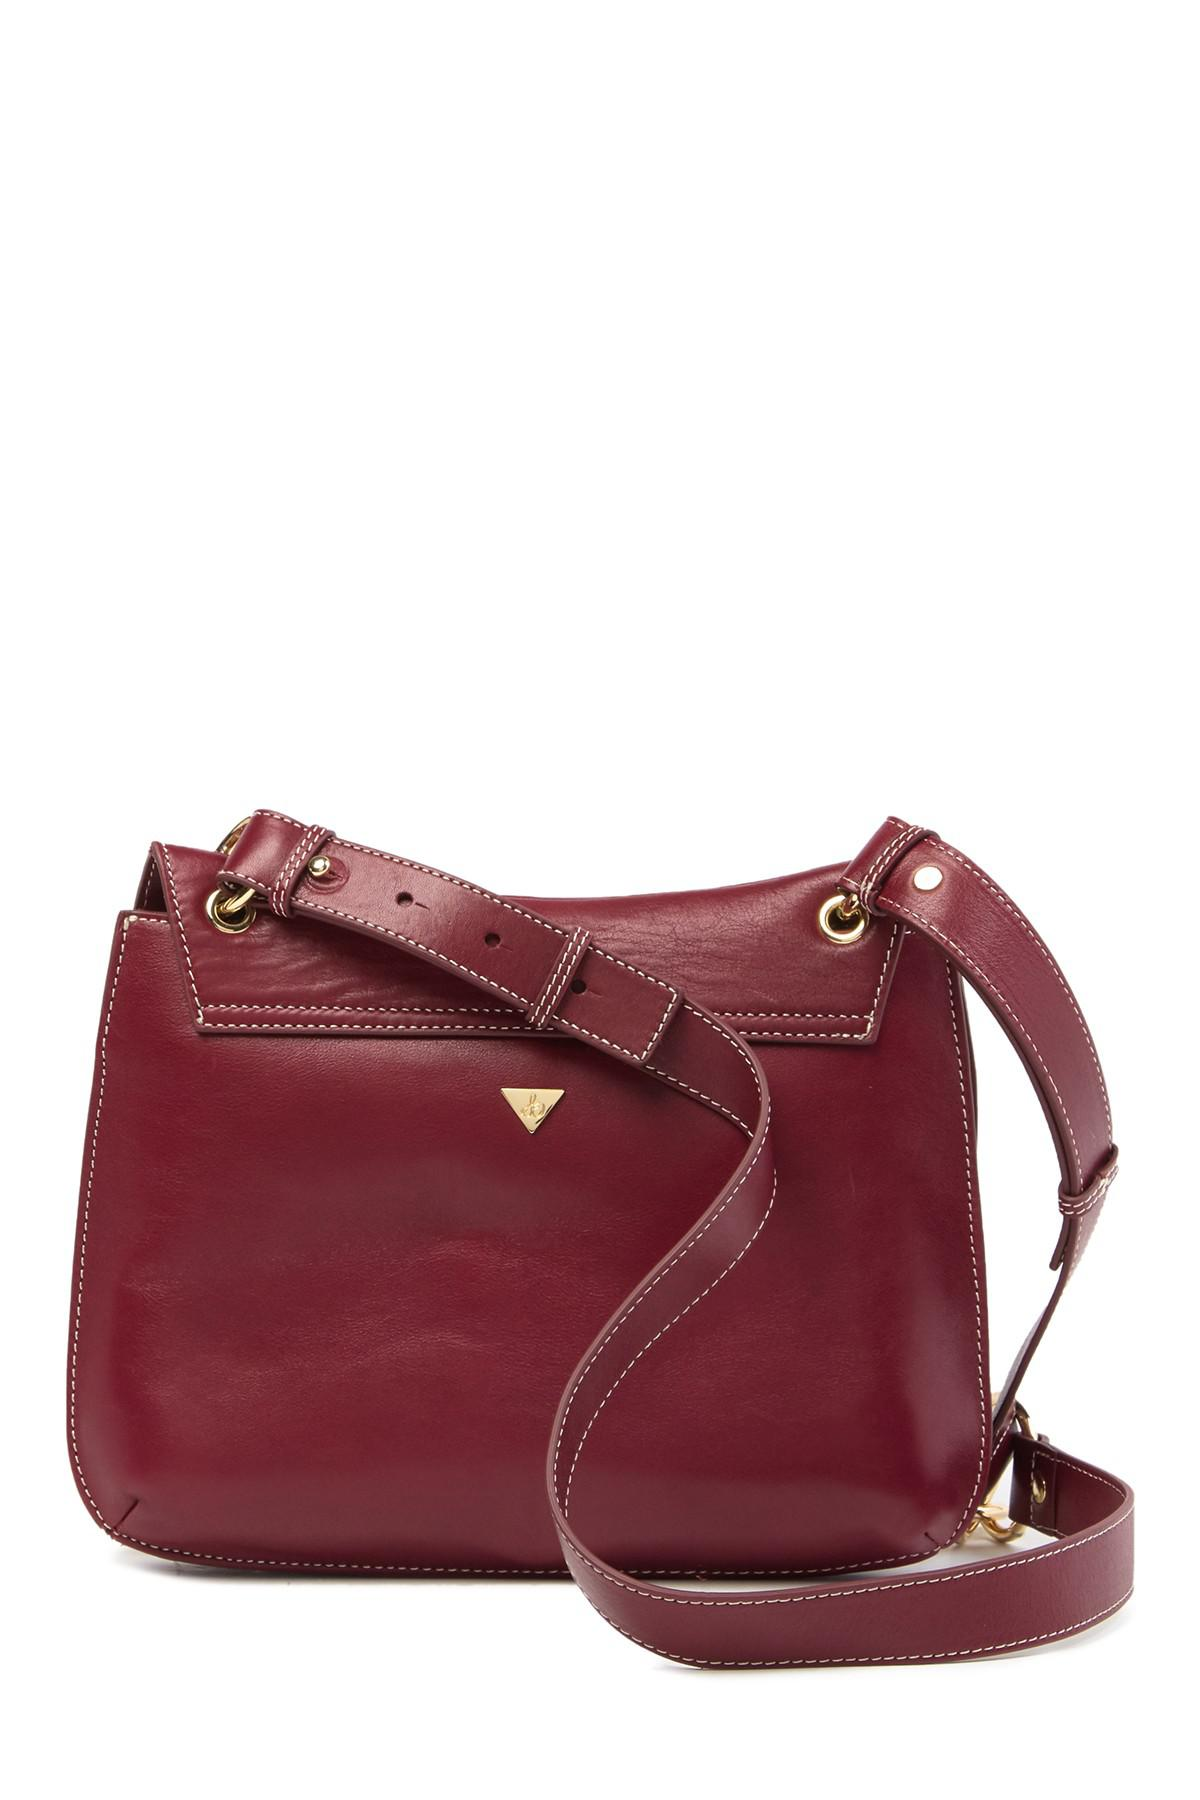 1386cad586c554 Gallery. Previously sold at  Nordstrom Rack · Women s Leather Messenger Bags  ...